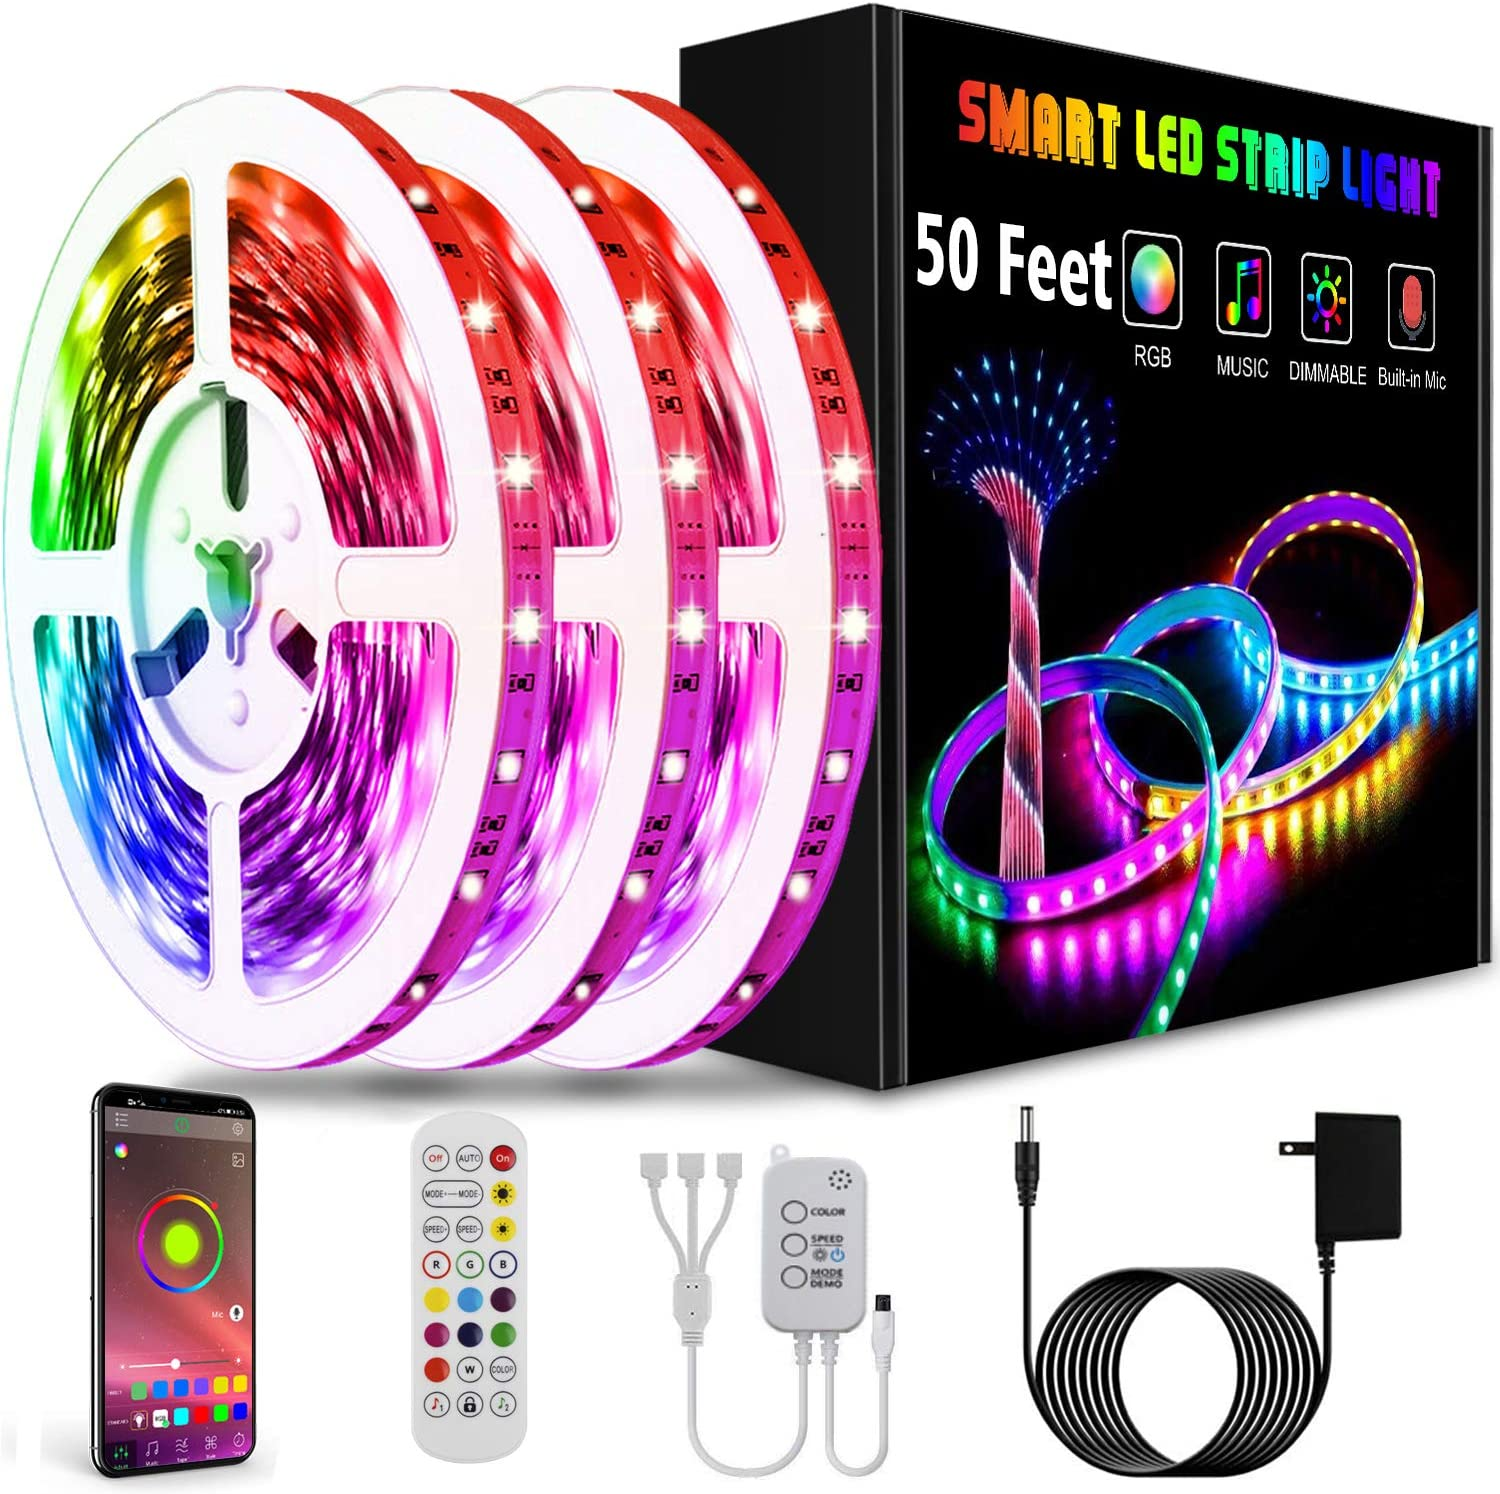 Led Lights Smart Led Strip Lights